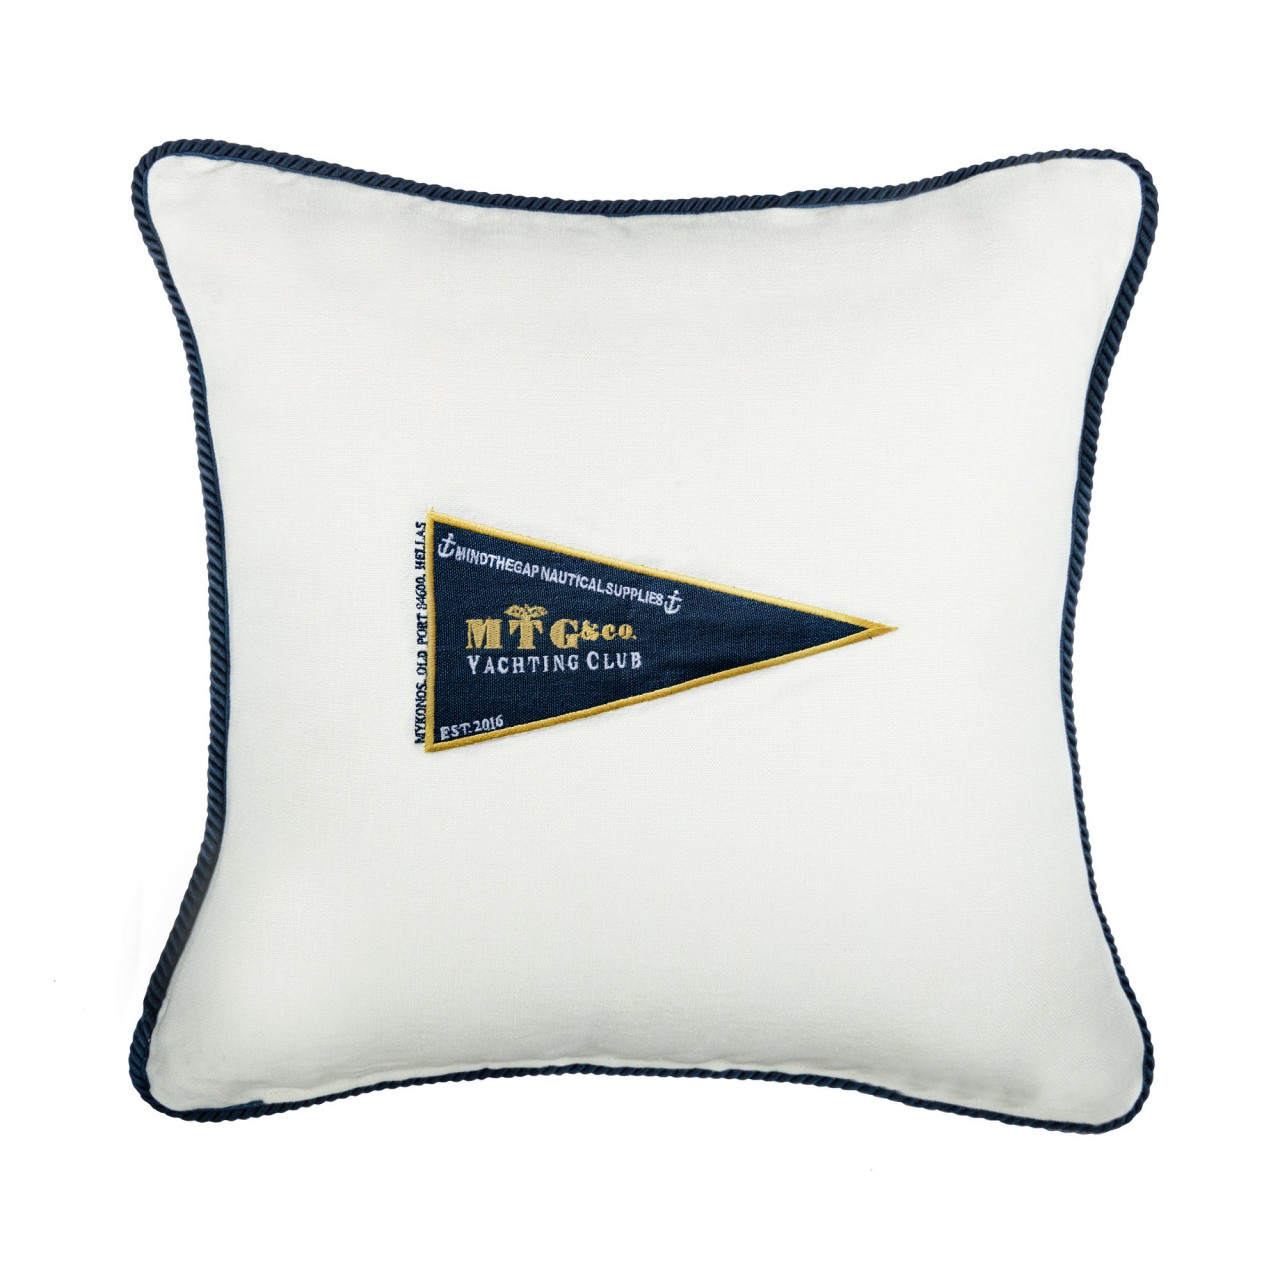 MTG YACHTING CLUB Linen Embroidered Cushion